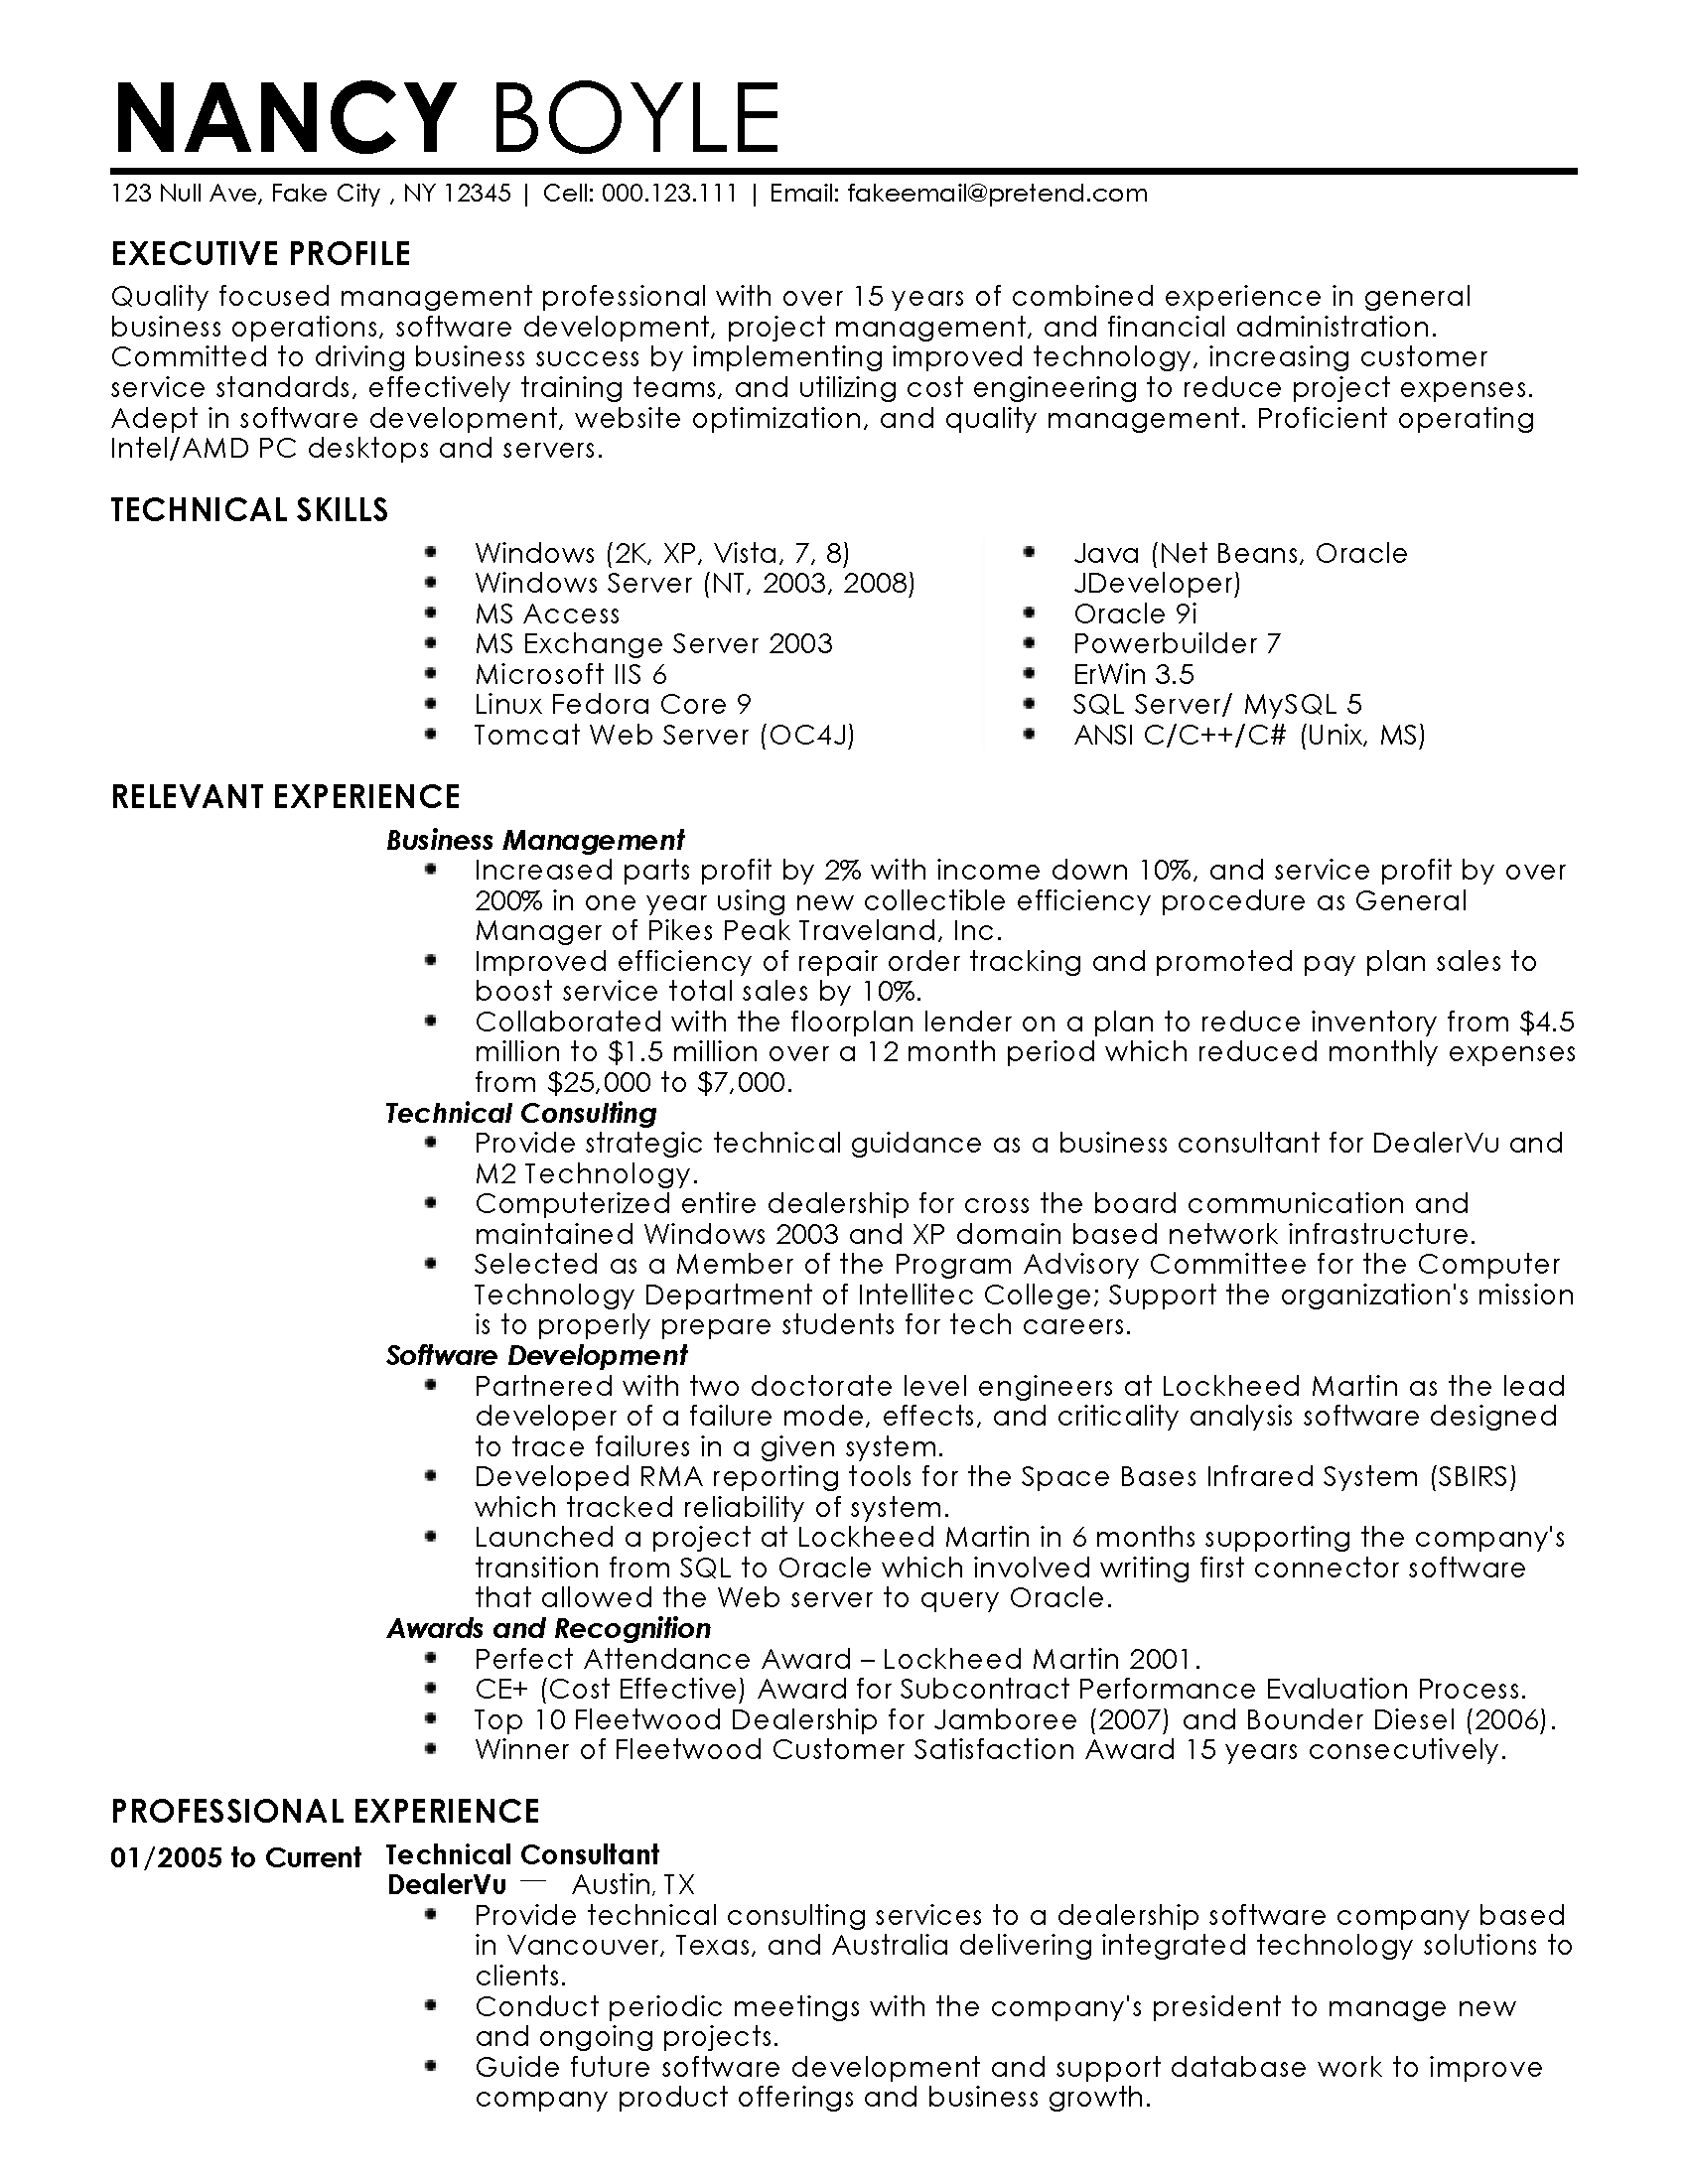 Project Management Experience On Resume Professional Business Management Templates To Showcase